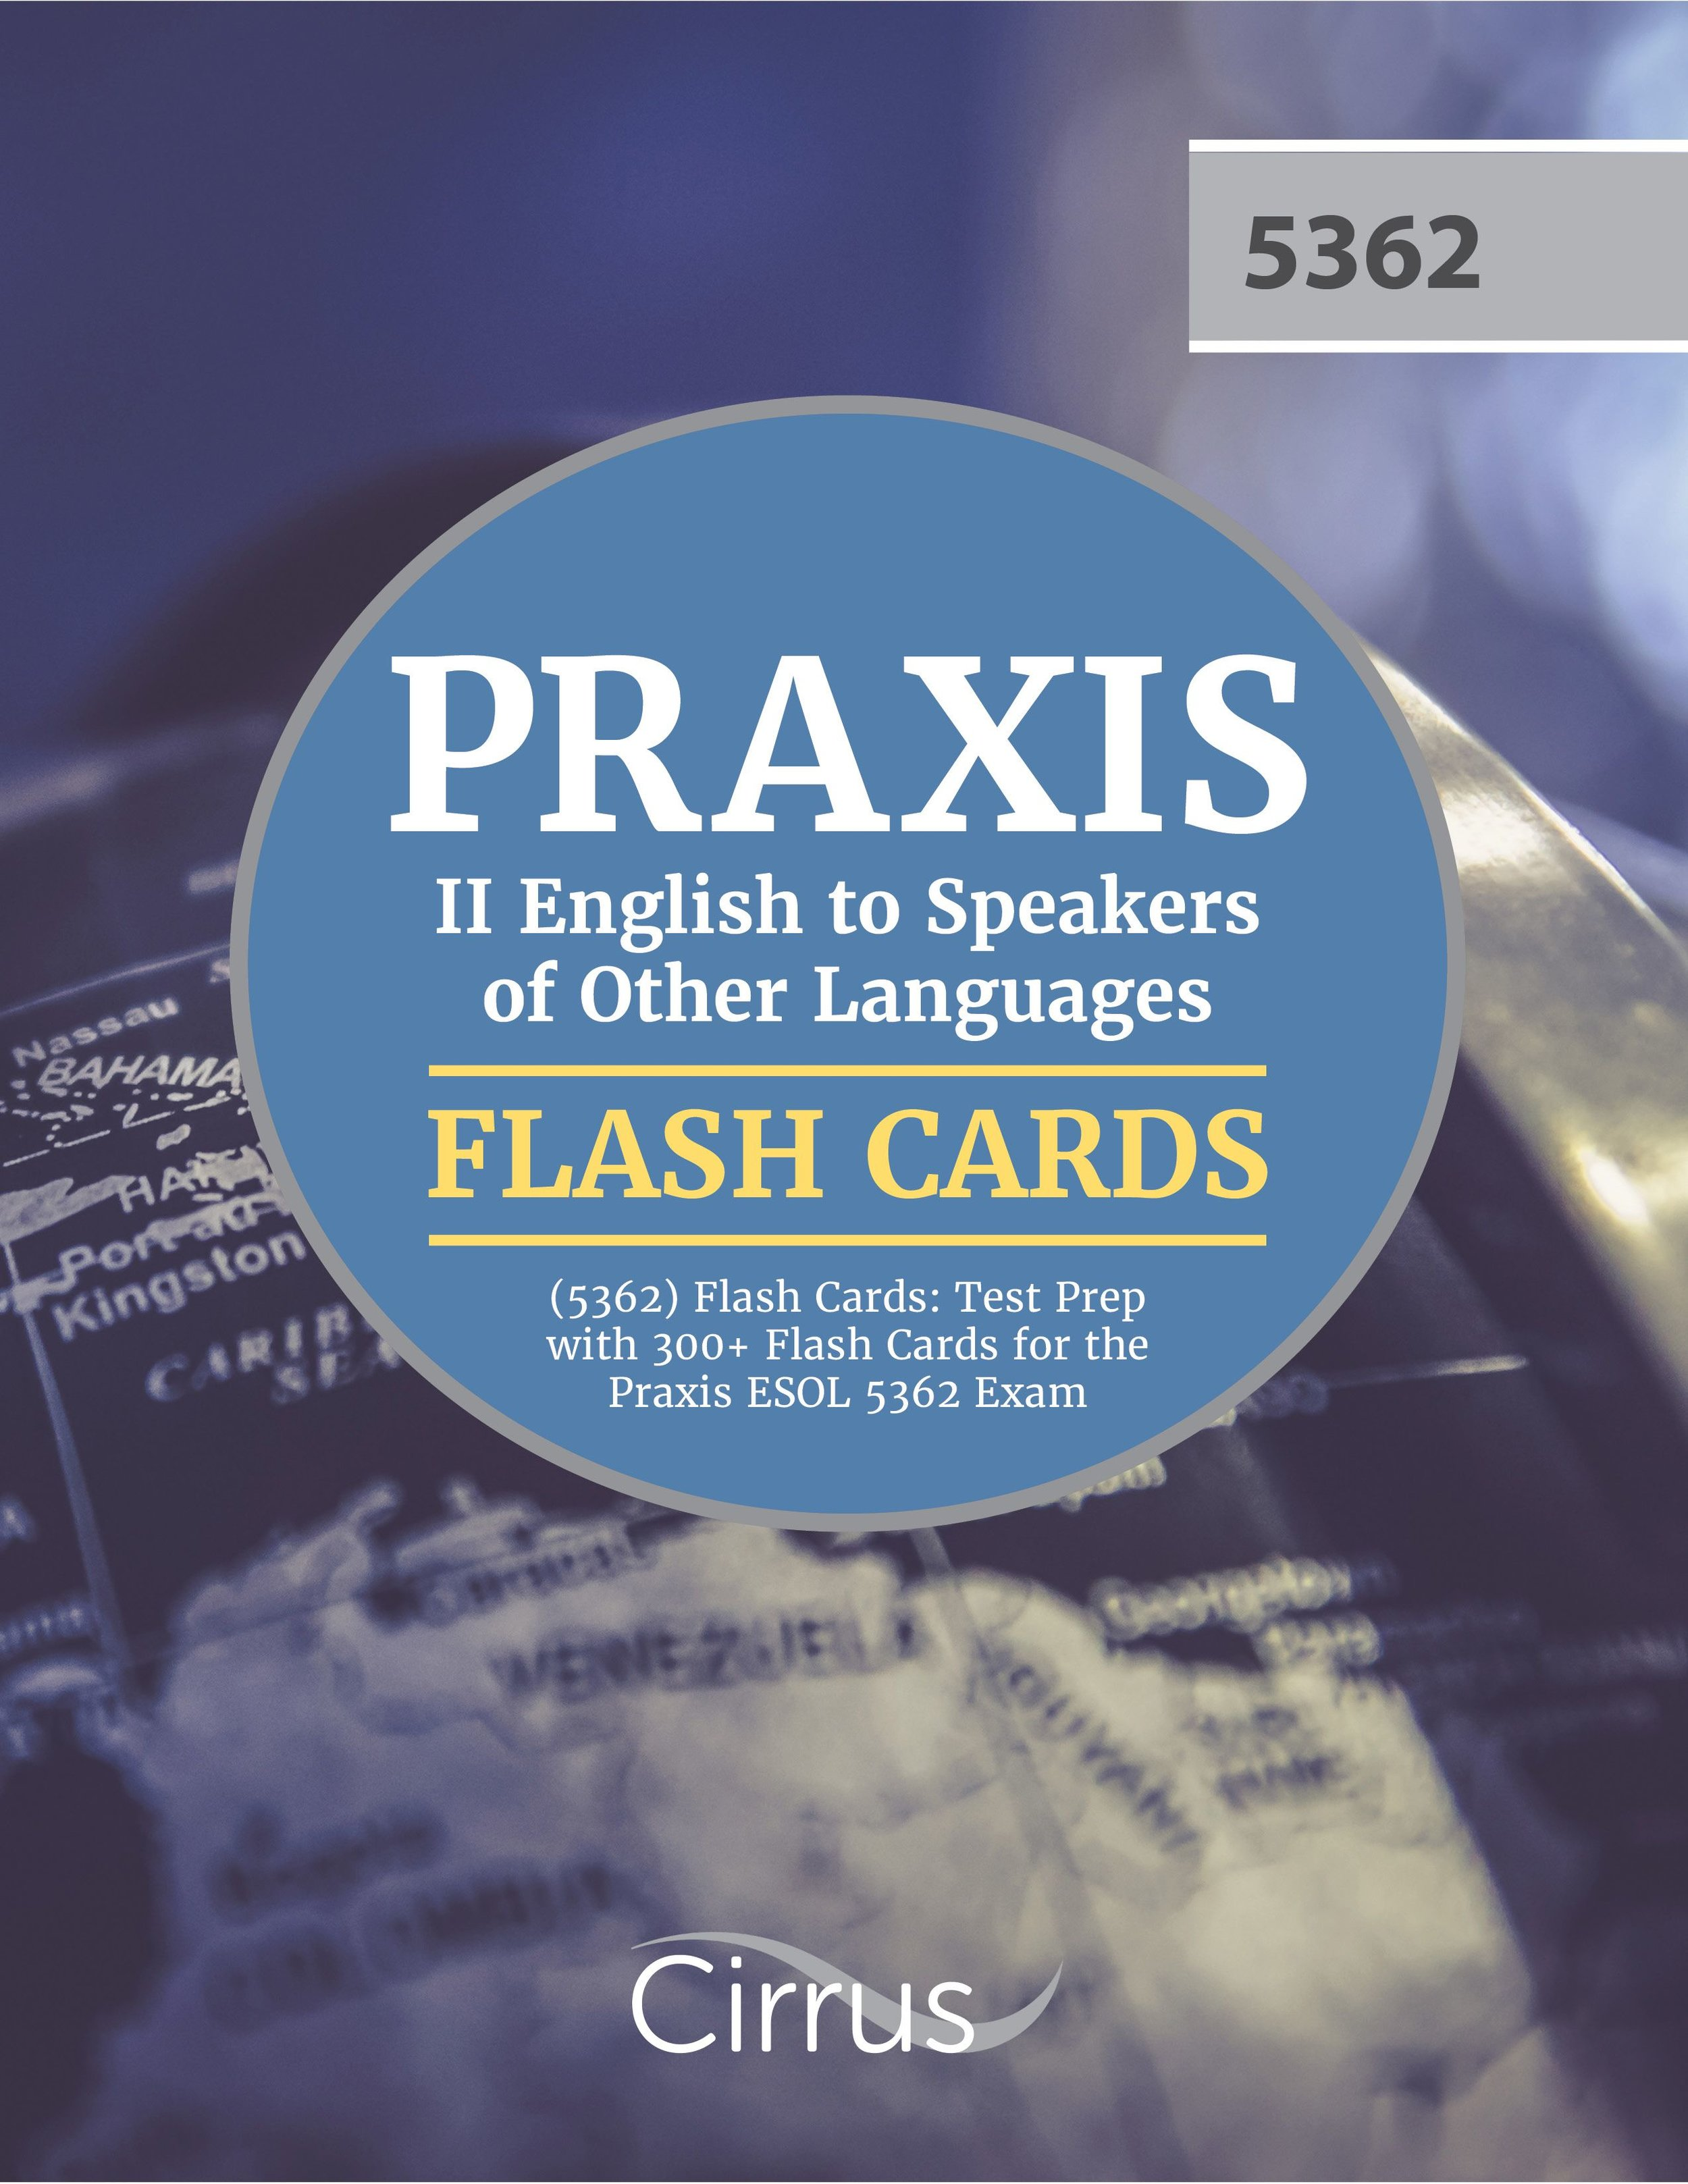 Praxis II English to Speakers of Other Languages 5362 Flash Cards